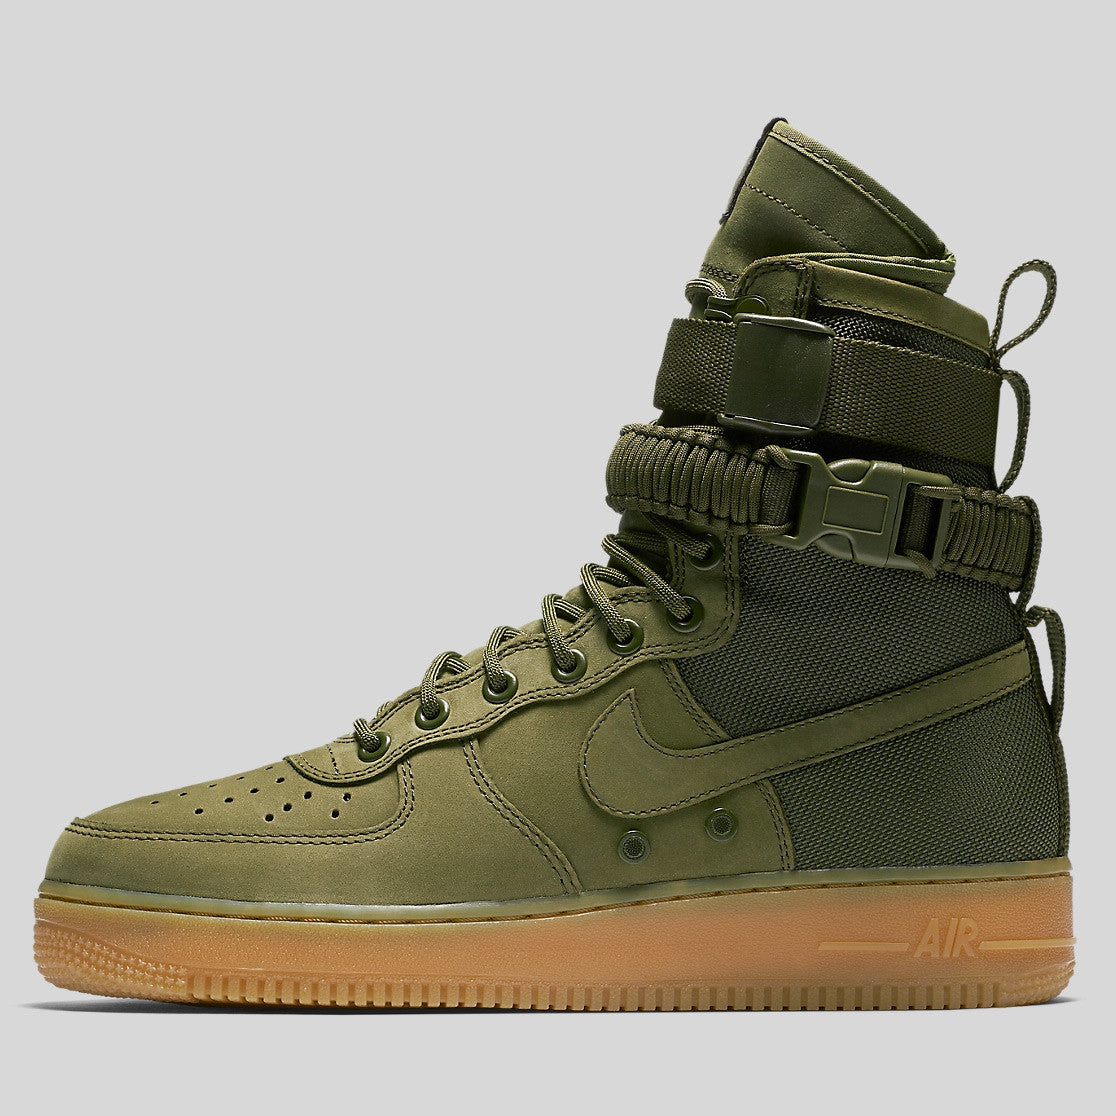 Nike SF AF1 Special Field Air Force 1 Faded Olive (859202-339)  f7500cc99ecd